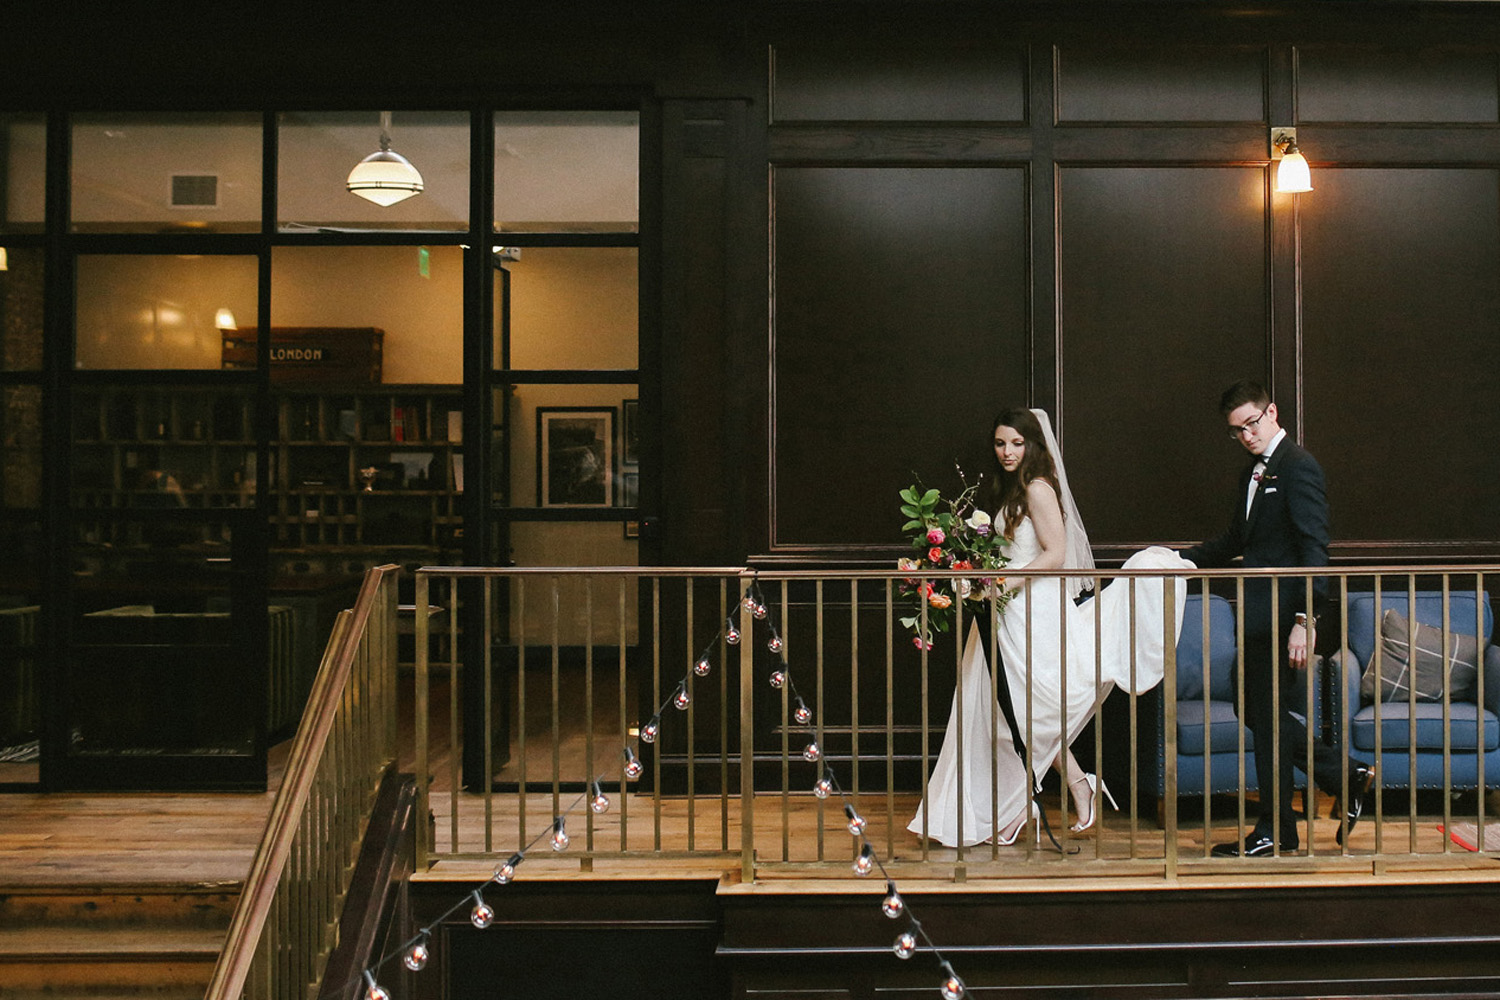 Oxford Exchange Wedding.Oxford Exchange Wedding Full Of Personality Tampa Florida